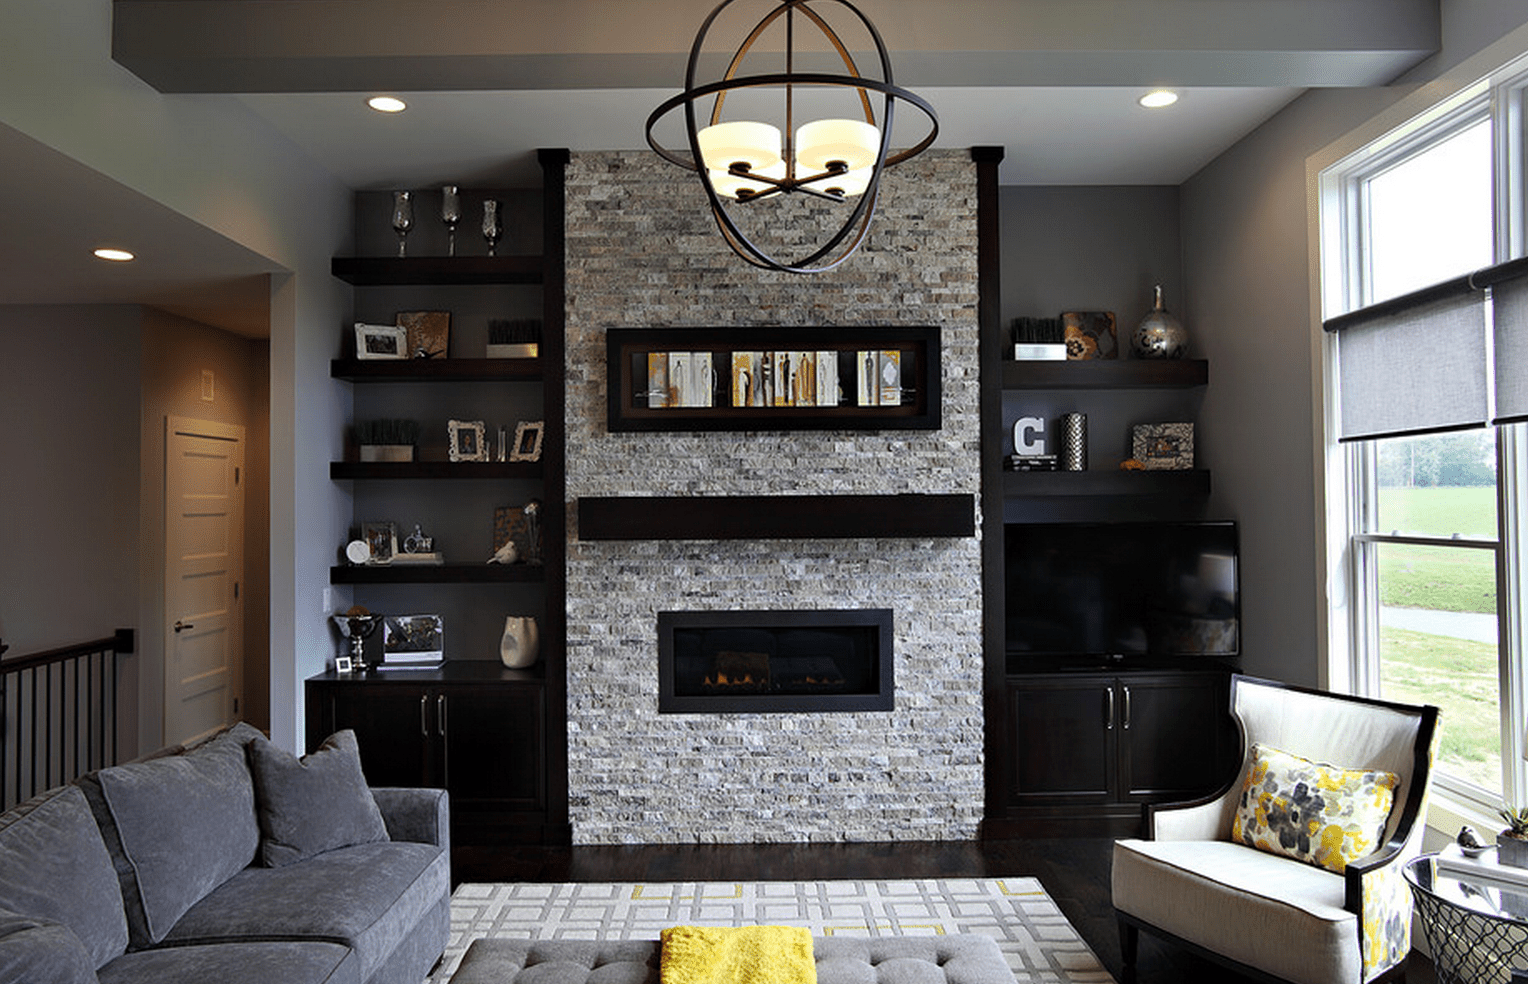 beautiful living rooms with built shelving modern room black ins state street interiors floating shelves flanking fireplace entryway coat rack and storage bench wall ledge shelf